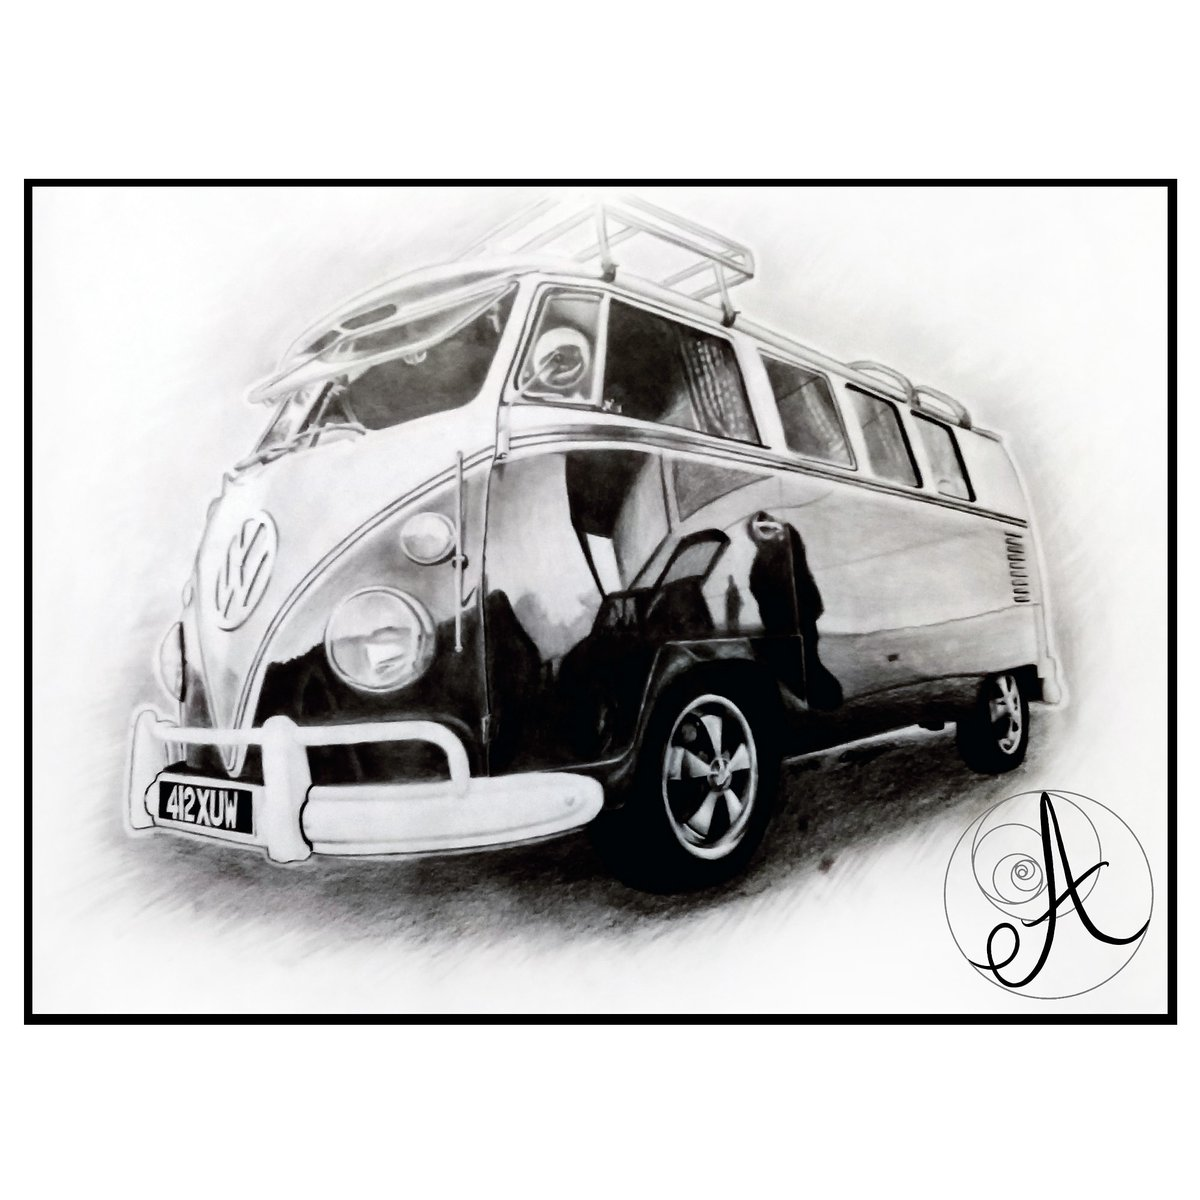 A comission I did a couple of years ago. Those reflections 😵 (A3, Graphite)  #drawings #art #drawing #draw #artist #sketch #artwork #illustration #artistsoninstagram #sketchbook #fanart #sketching #arts #artoftheday #pencildrawing  #vwbus #vw #vwt #volkswagen #t #aircooled #van https://t.co/LhltvGYYWu